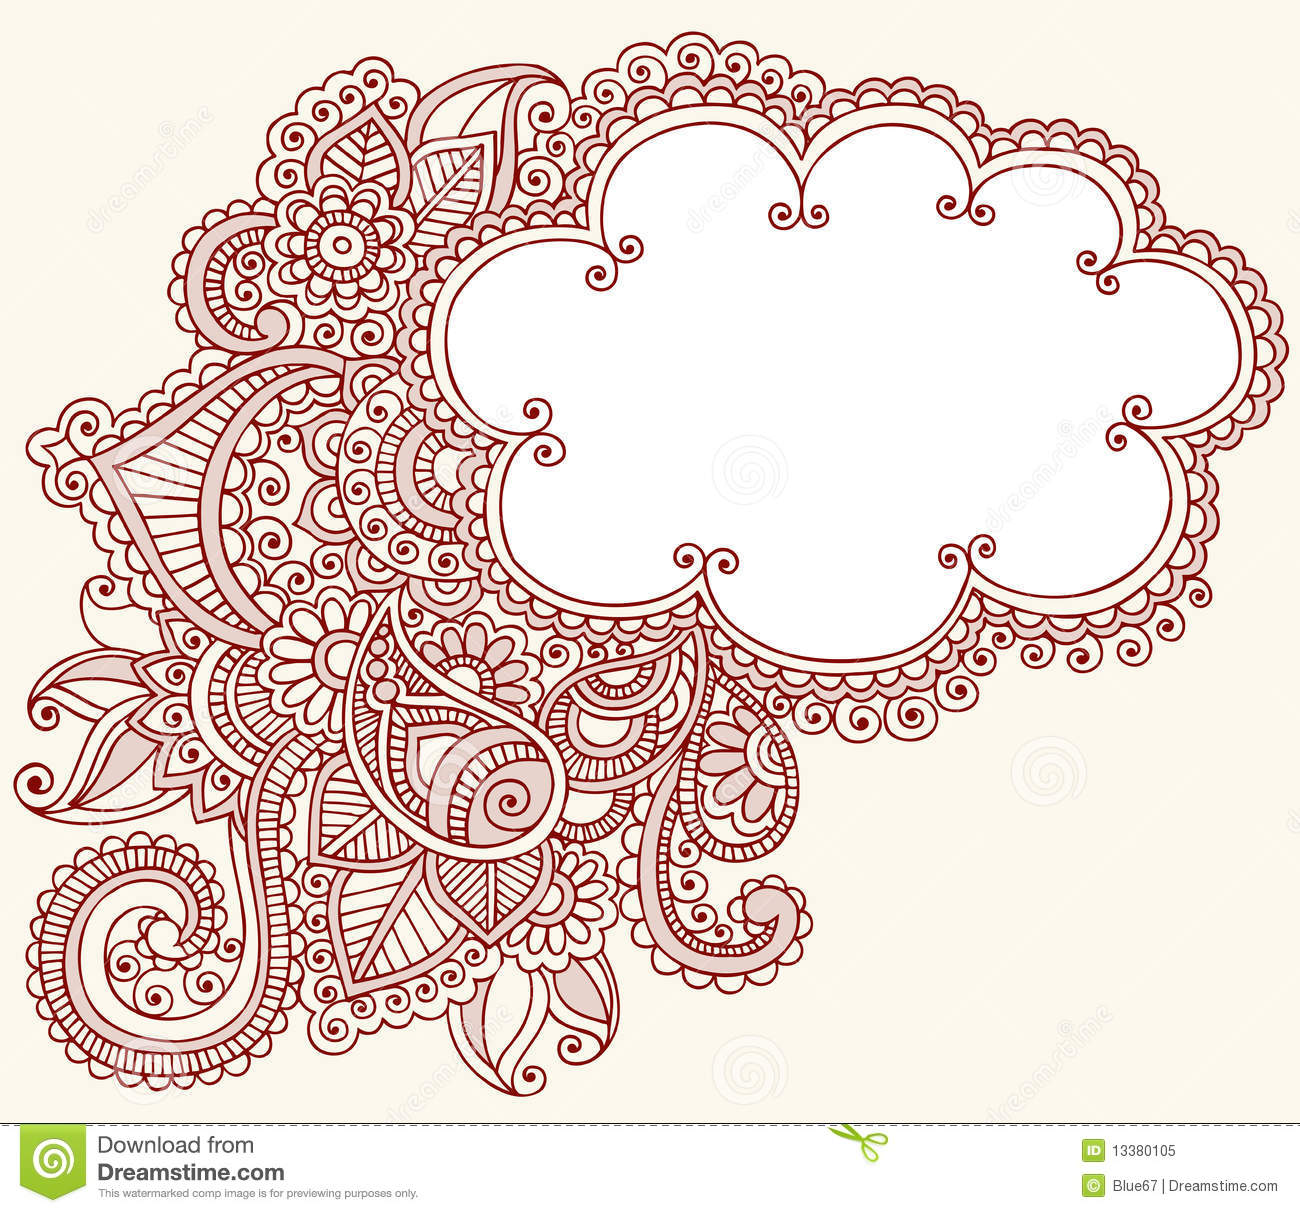 Henna Mehndi Paisley Cloud Doodle Design Stock Vector Illustration